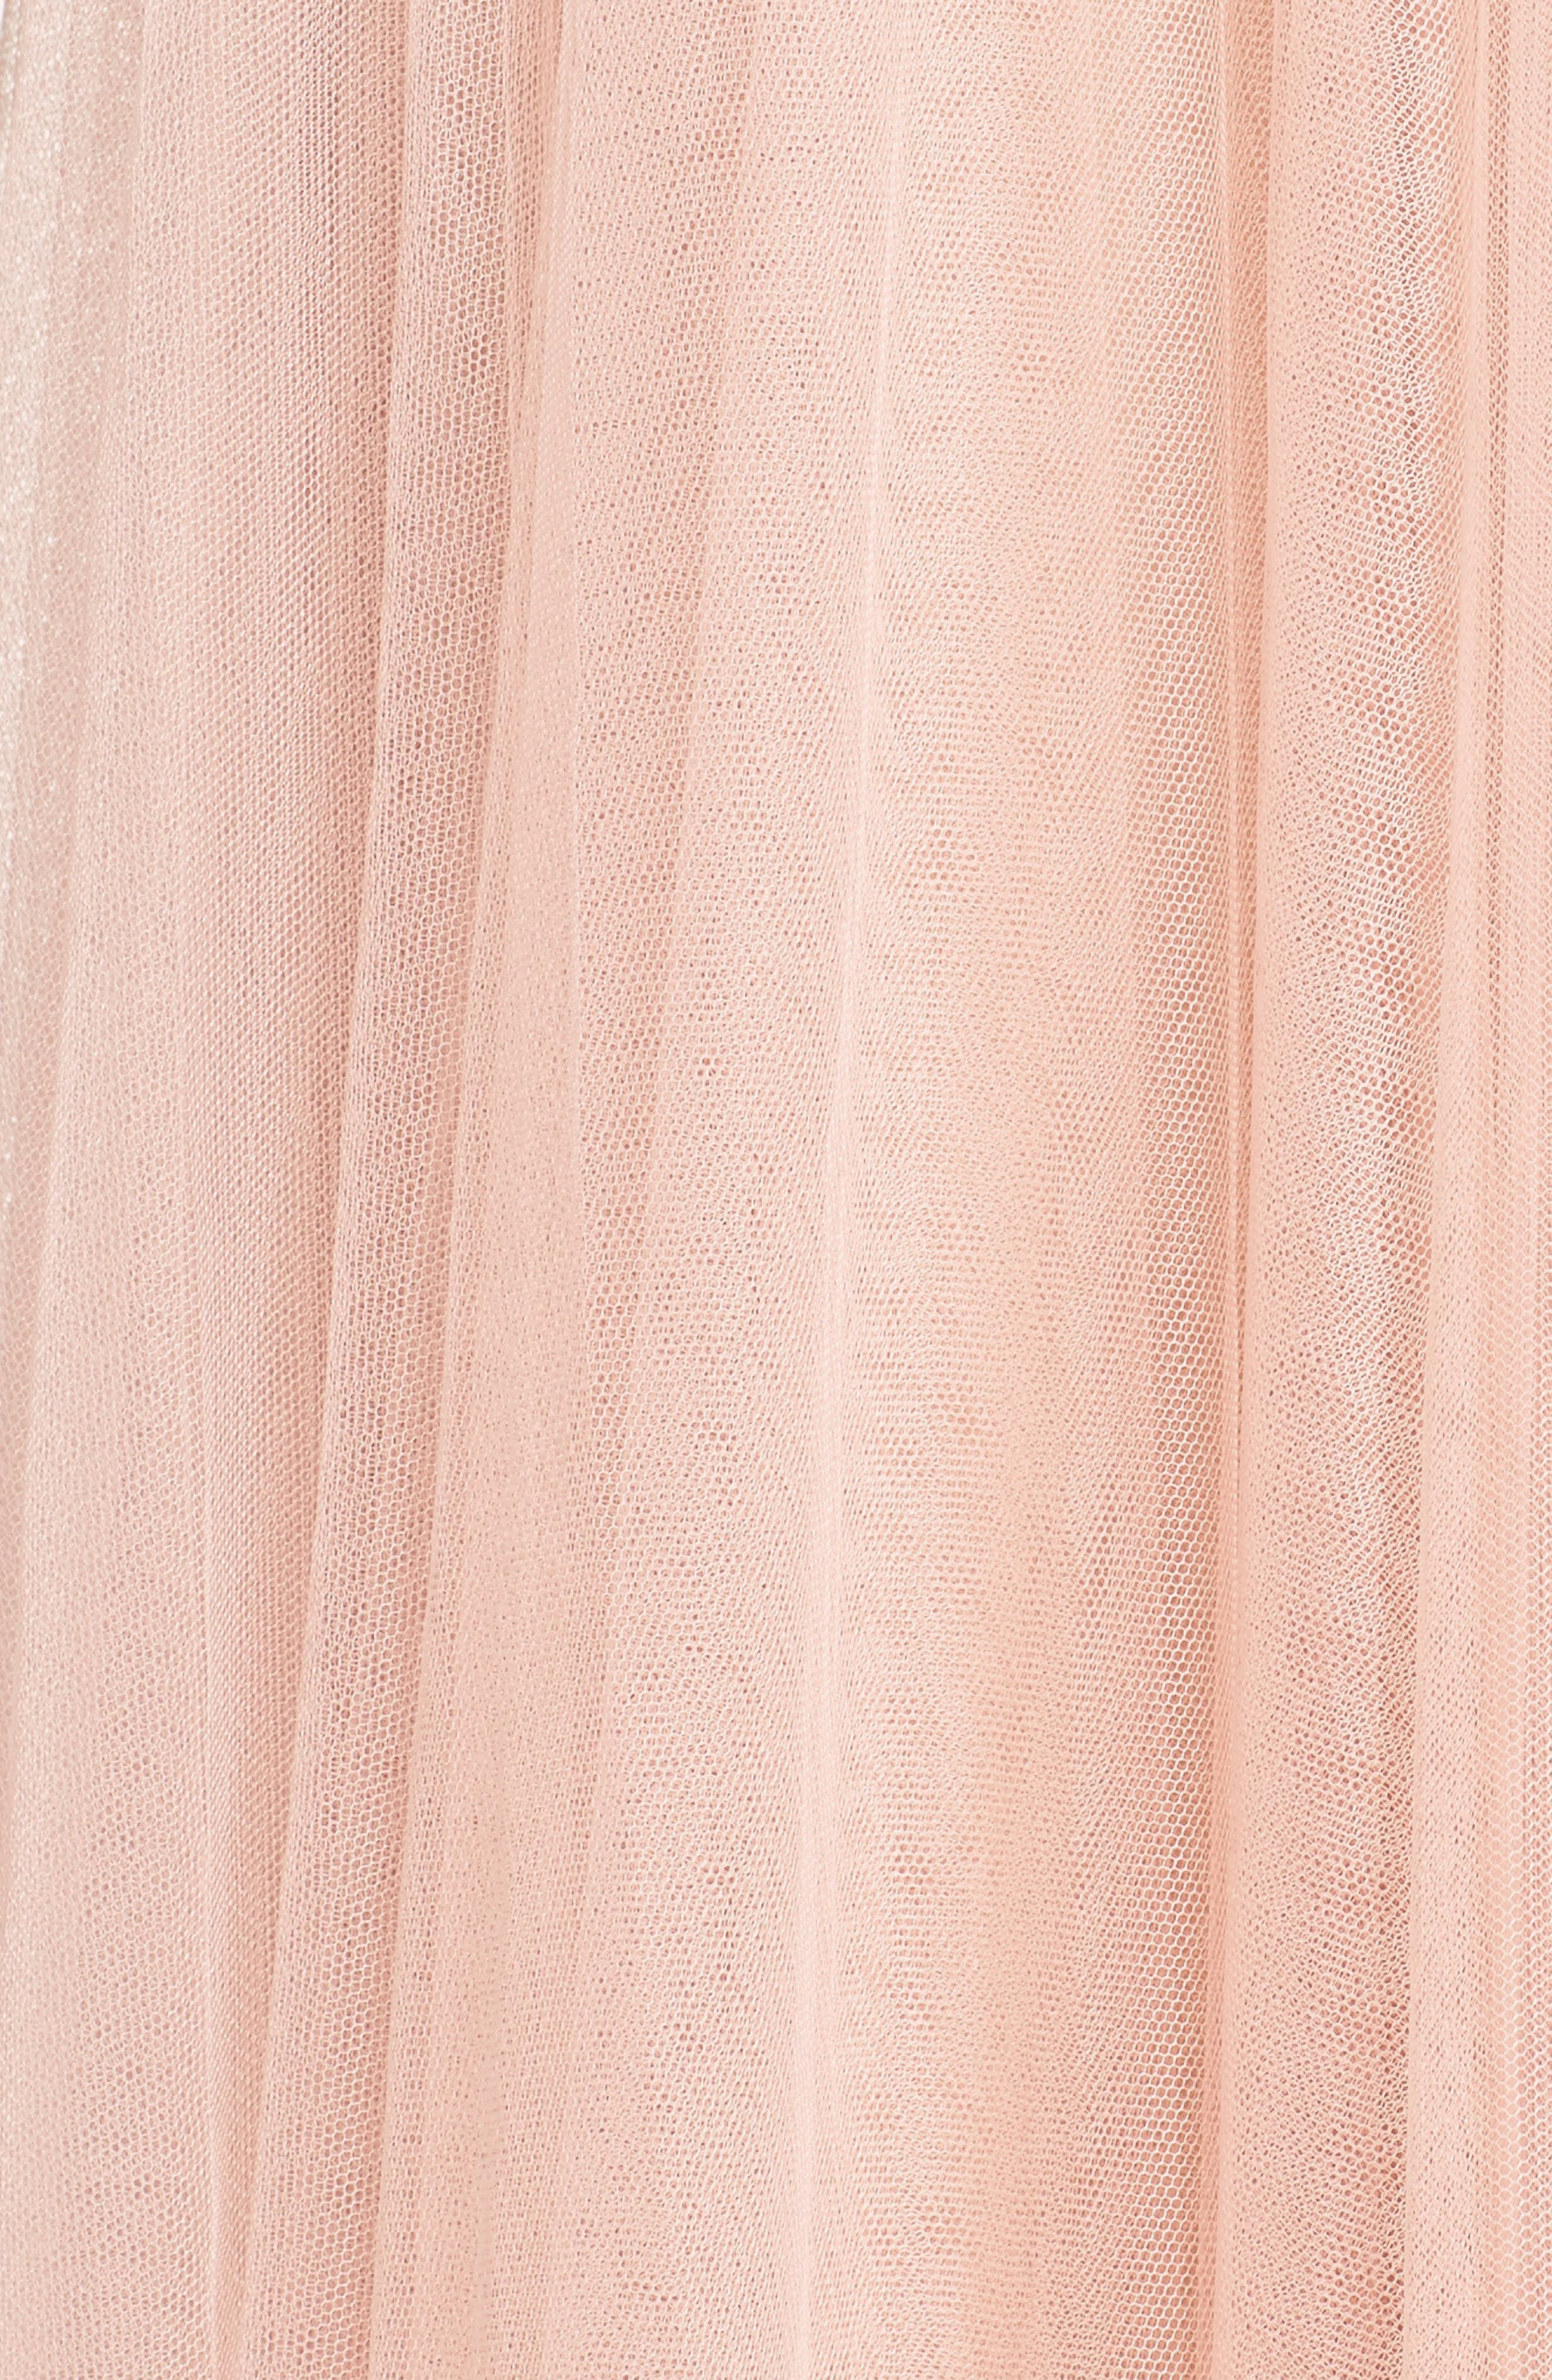 Winslow Long Tulle A-Line Skirt,                             Alternate thumbnail 6, color,                             CAMEO PINK